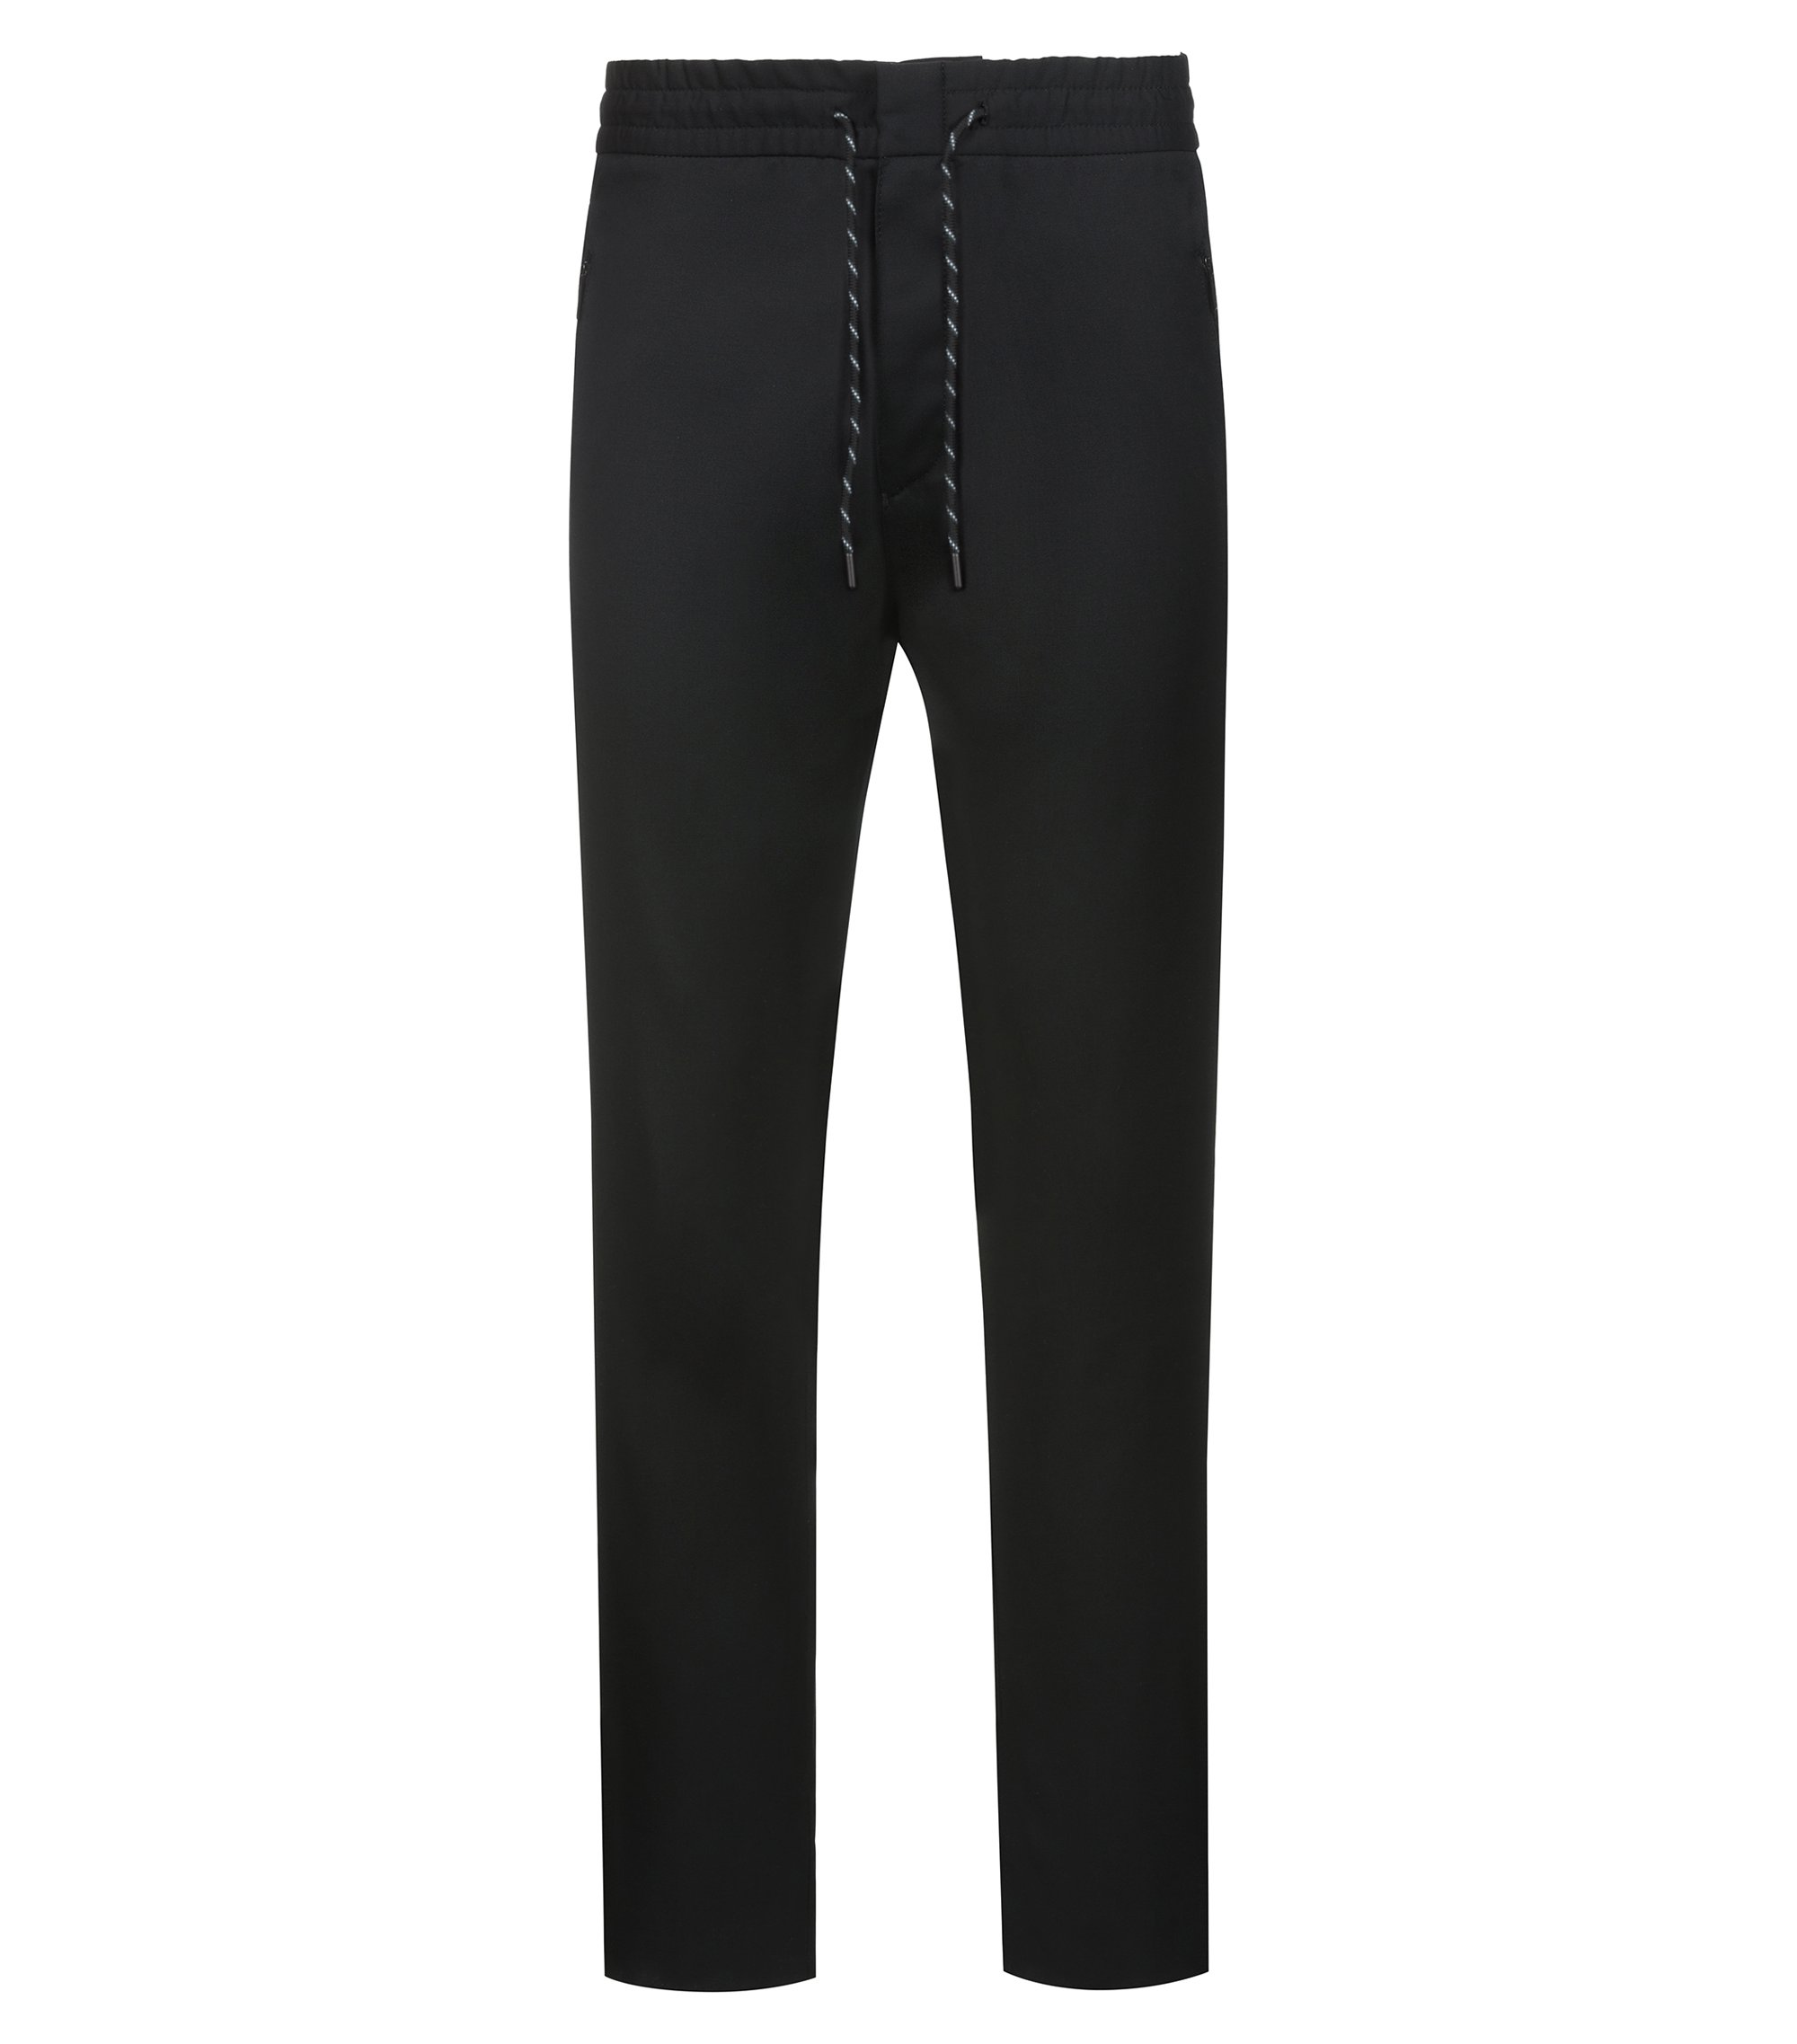 Bits & Bytes Capsule tapered-fit drawstring trousers in virgin wool, Black